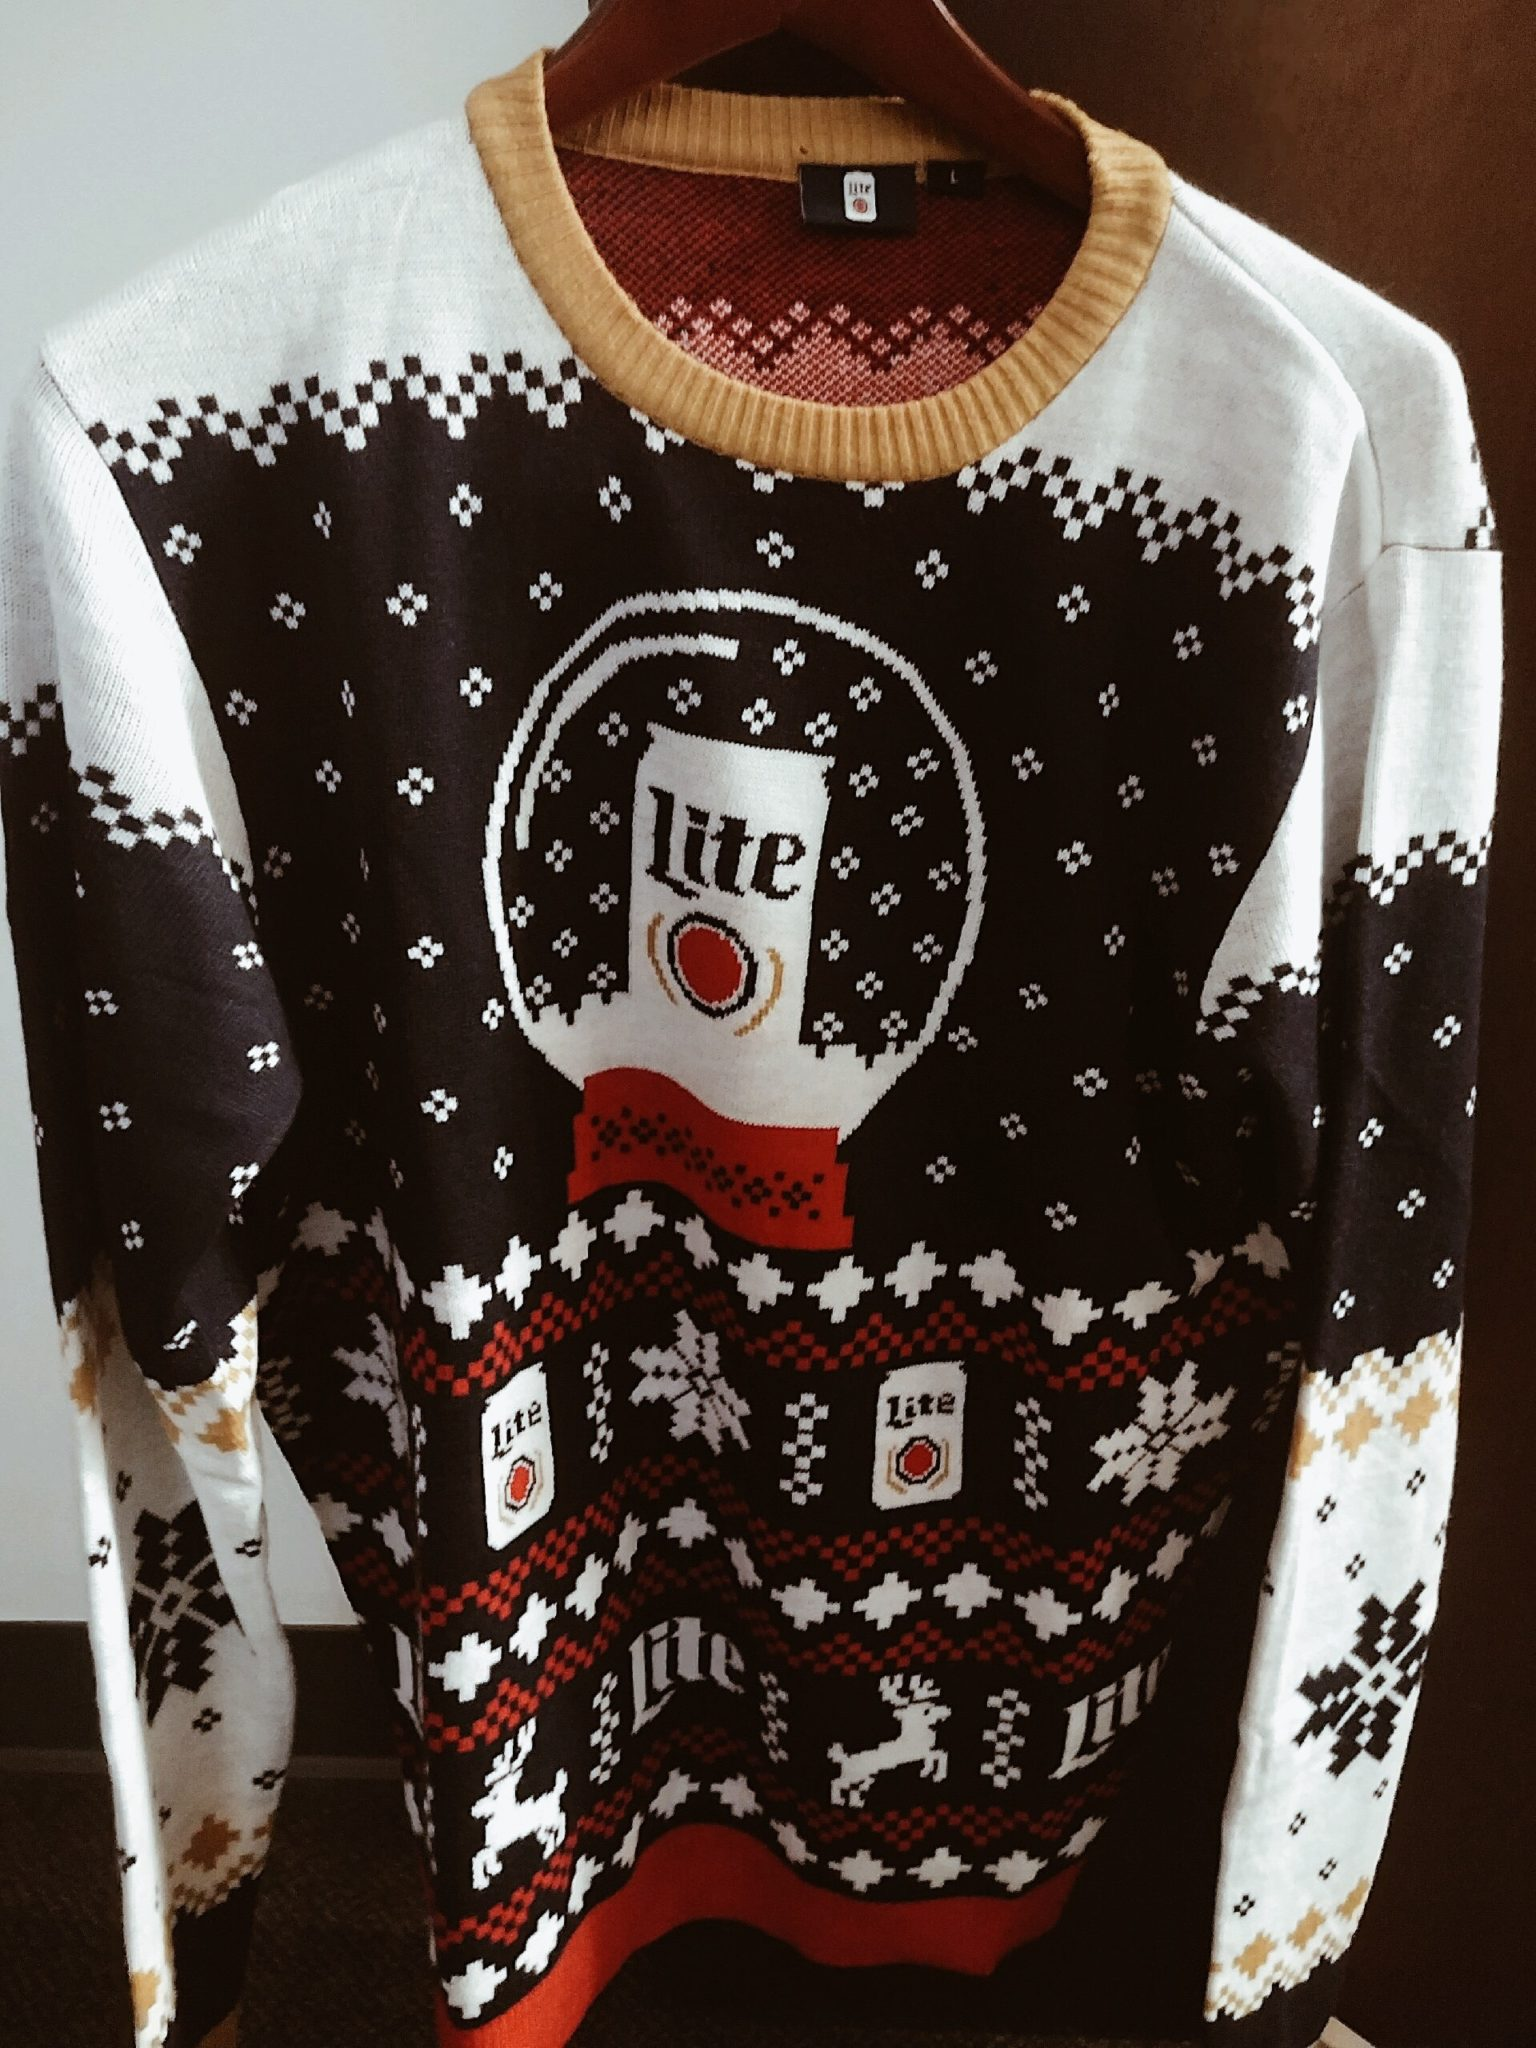 BREAKING NEWS: I Actually Won Stewart's Shops Miller Lite Sweater Contest